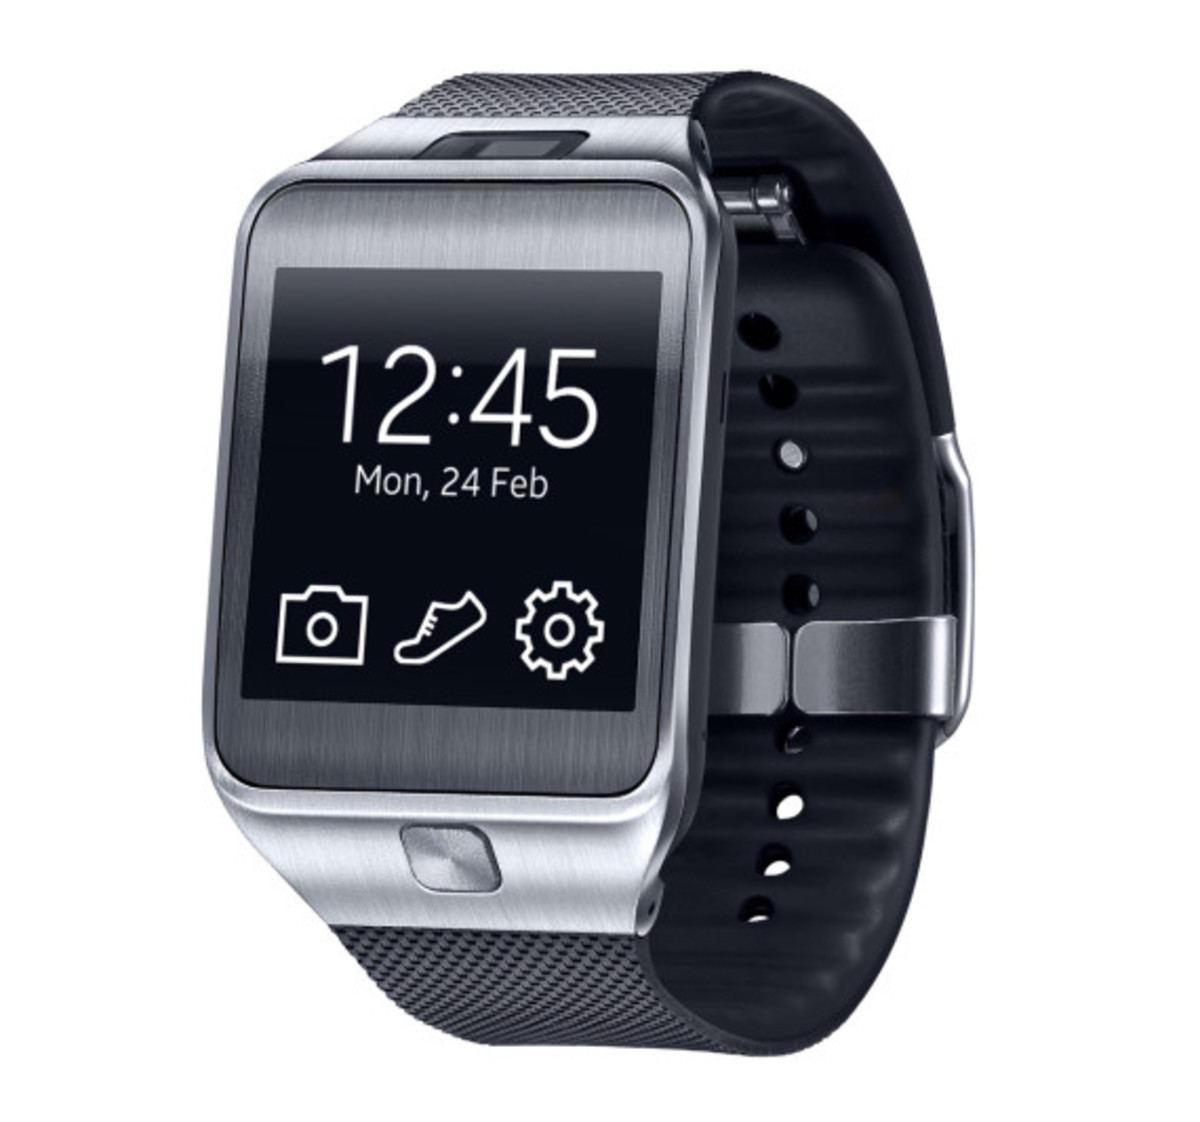 samsung-introduces-gear-2-and-gear-2-neo-smartwatches-04